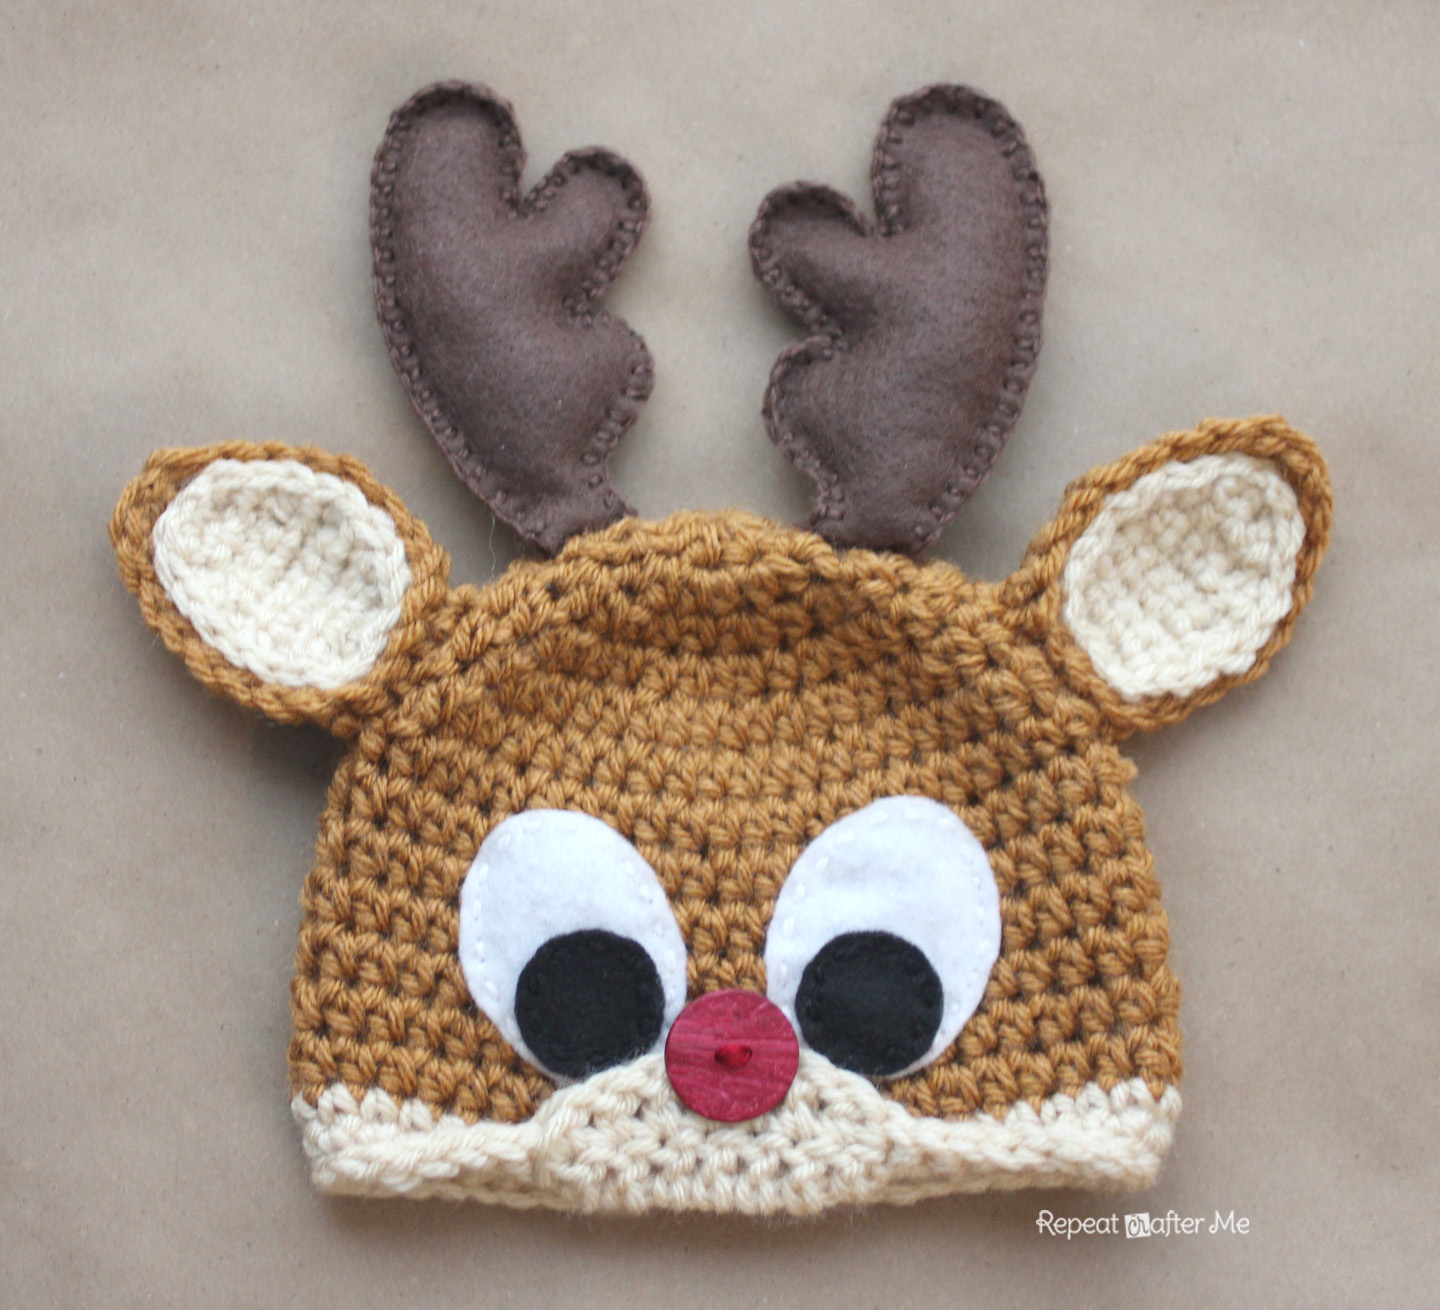 Free Reindeer Hat Crochet Pattern For Dogs : Crochet Rudolph the Reindeer Hat Pattern - Repeat Crafter Me